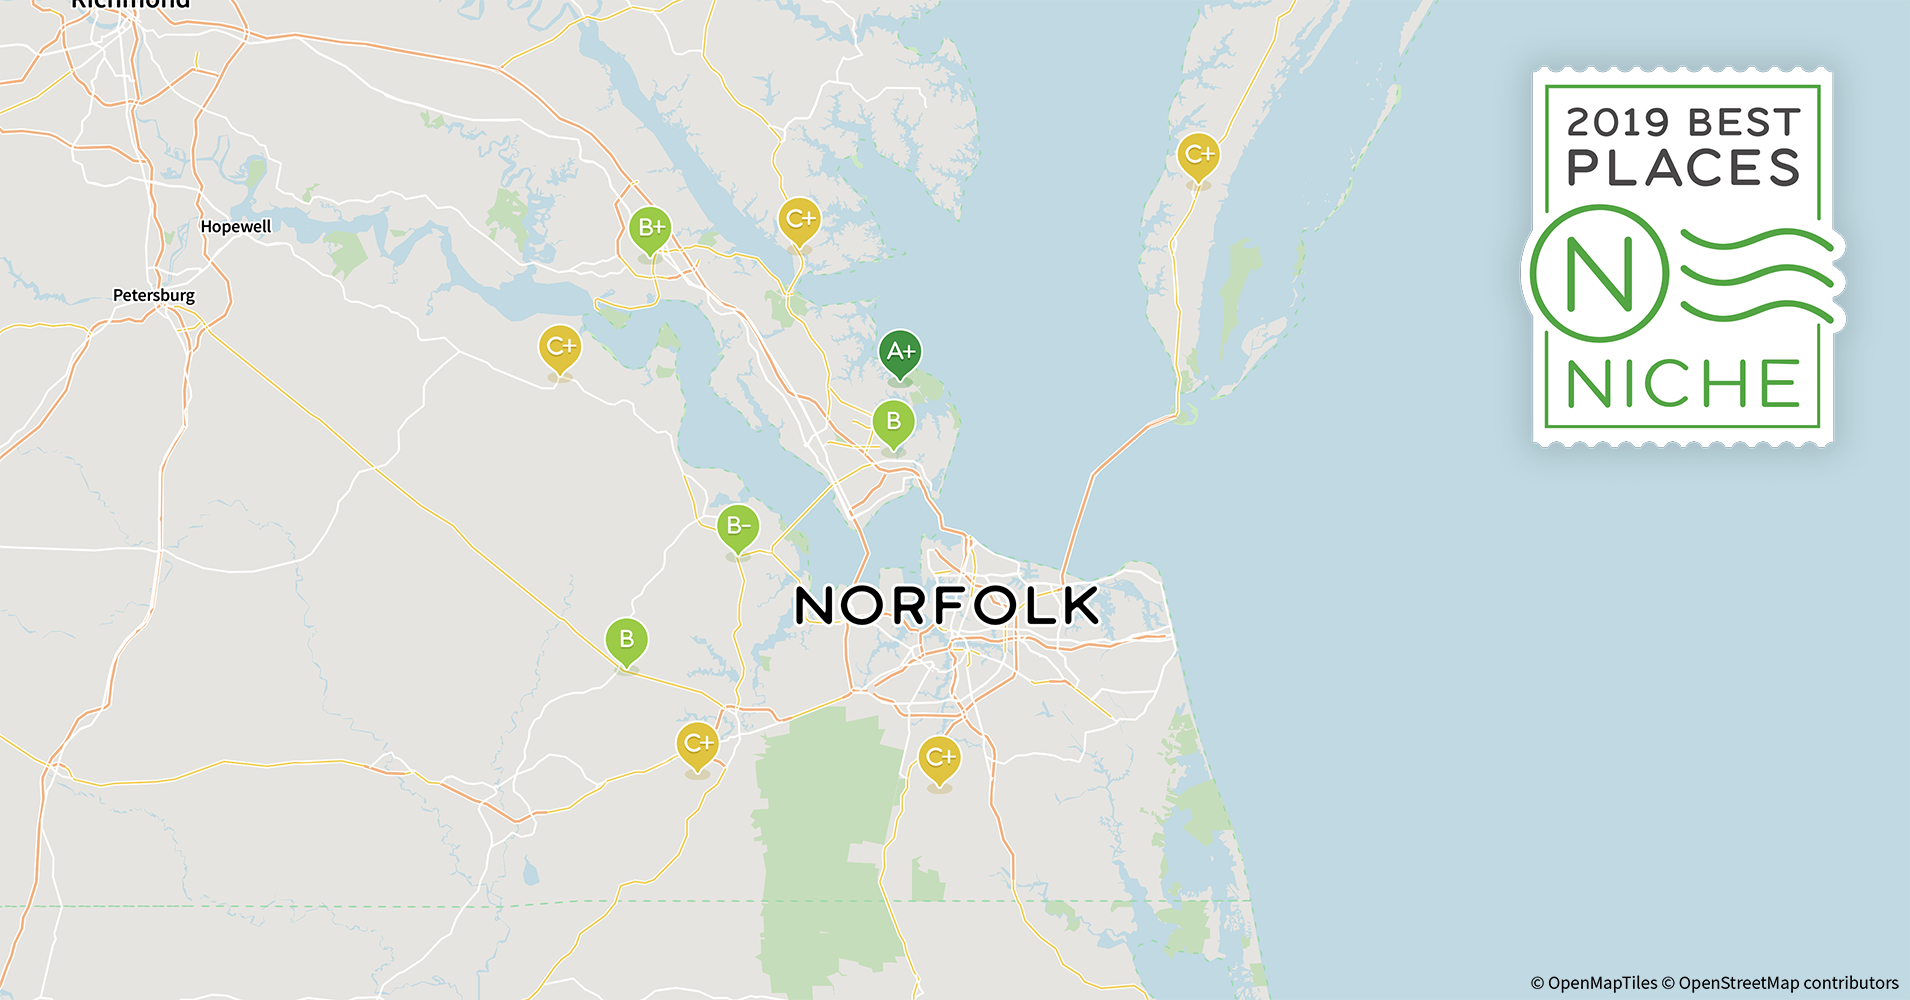 2019 Best Norfolk Area Suburbs to Live - Niche Map Of Suffolk Va Neighborhoods on map of western ny, map of norfolk va neighborhoods, map of charlottesville va neighborhoods, map of annandale virginia, map of suffolk virginia, map suffolk va chuckatuck va, map of virginia showing cities, map of alexandria va neighborhoods, map of roanoke va neighborhoods, map of diamondhead ms, map of western suffolk county, map of jamestown virginia, map of carroll co va, map of gloucester courthouse va, map of danville va, map of chesapeake virginia, map of chesapeake va neighborhoods, map of virginia beach va neighborhoods, map of newport news va, map of smithfield,